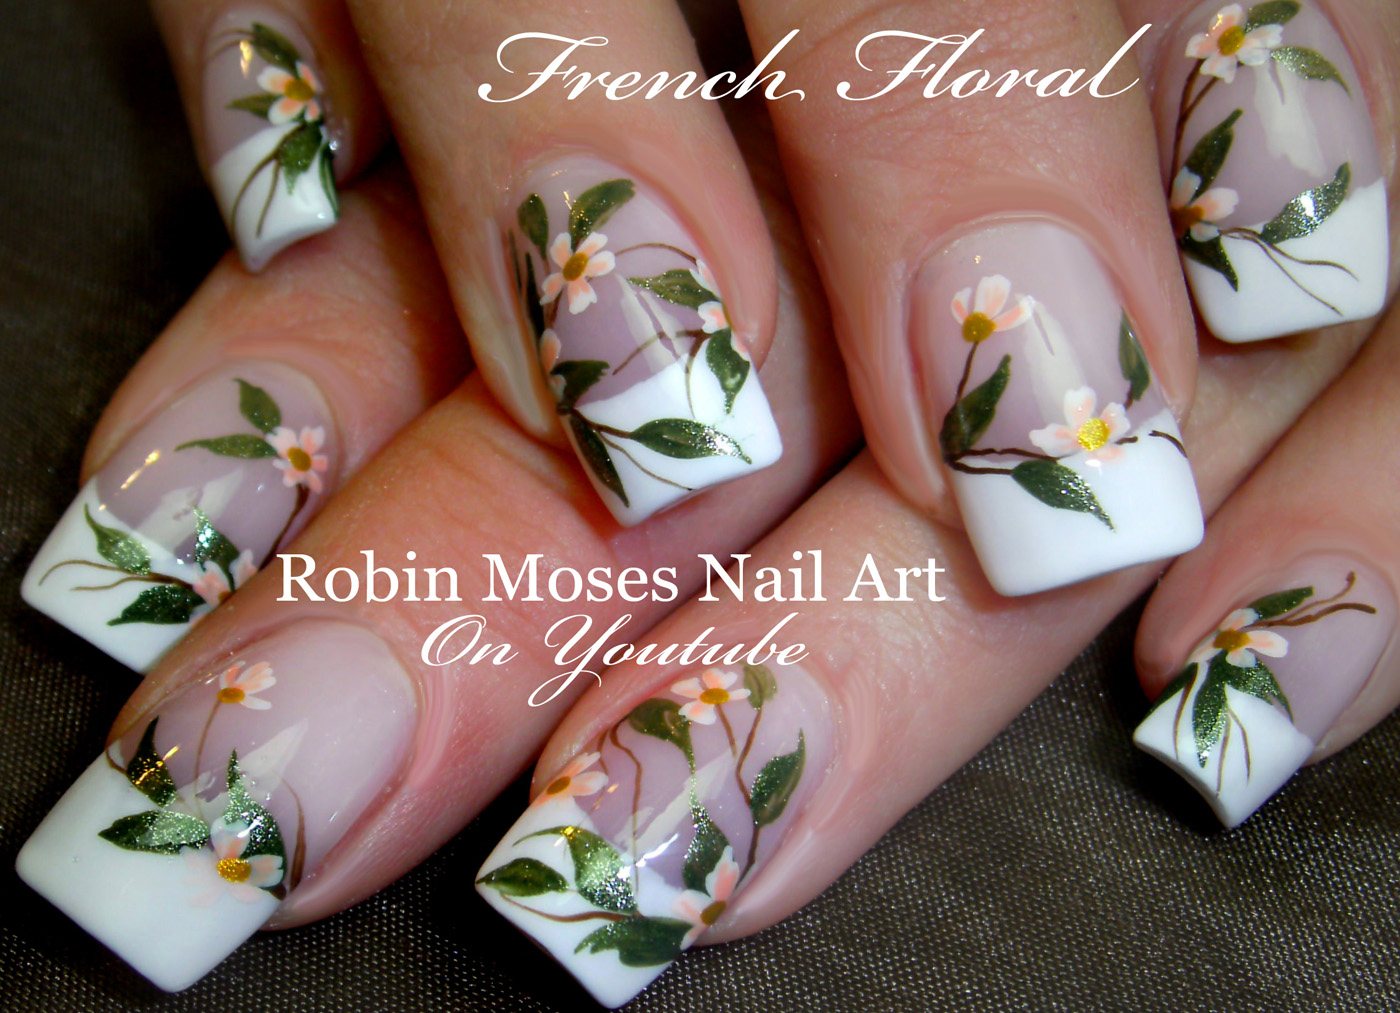 Robin moses nail art elegant white flower nails wedding nails elegant white flower nails wedding nails wedding nail art wedding ideas swarovski pixie dust white flower nail art prinsesfo Image collections